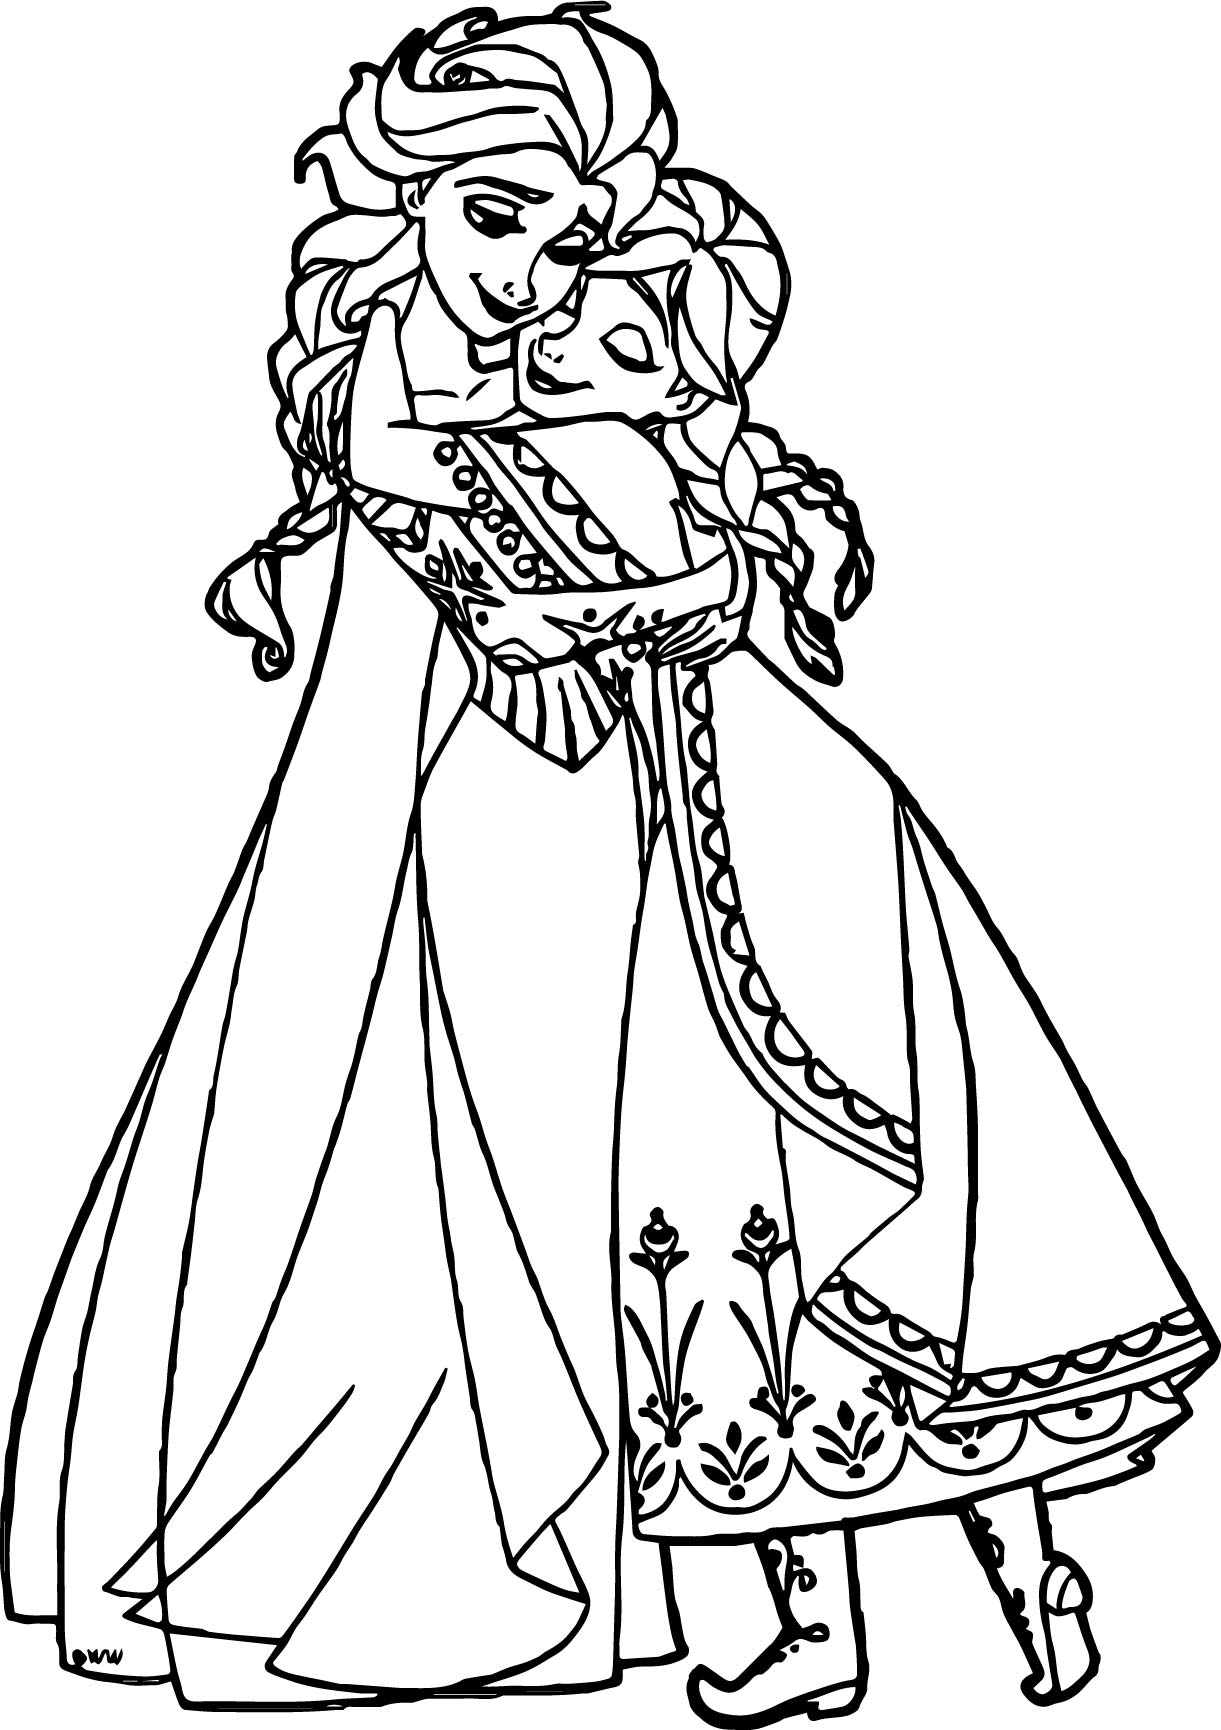 anna and elsa frozen coloring pages disney39s frozen coloring pages 2 disneyclipscom anna elsa frozen and coloring pages